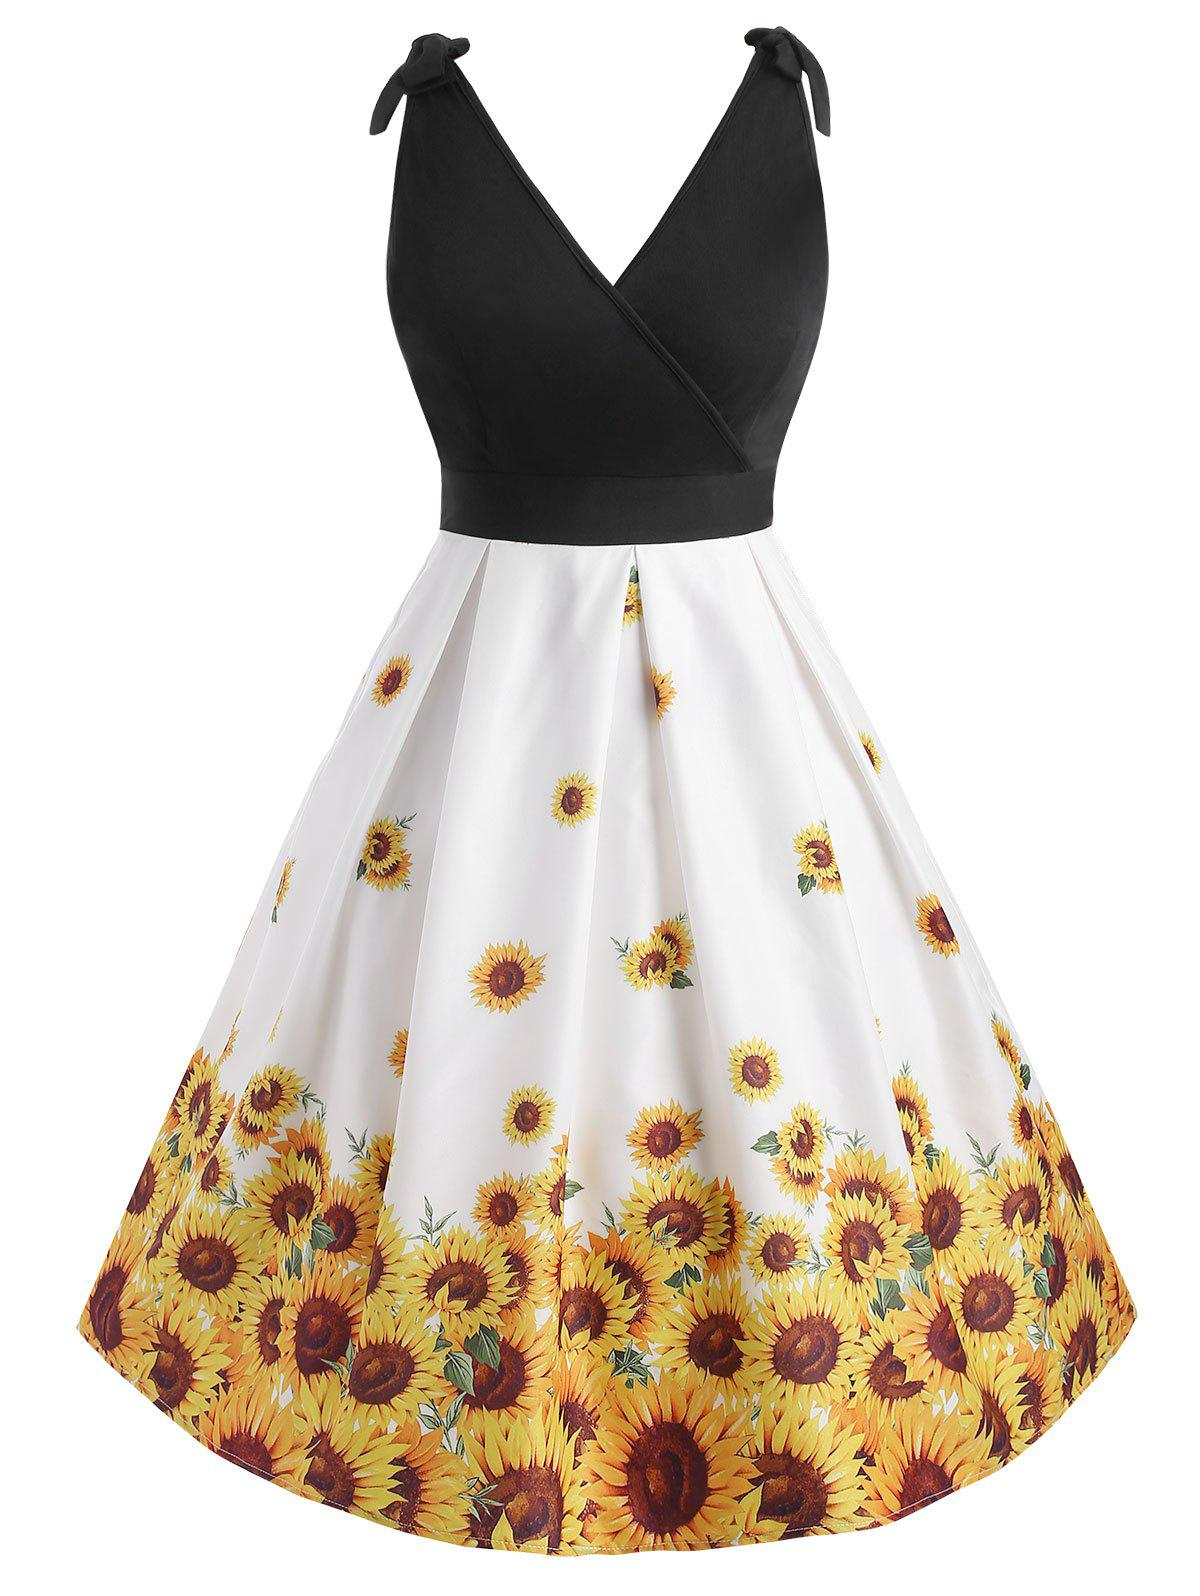 Affordable Sunflower Plus Size Surplice Vintage Dress